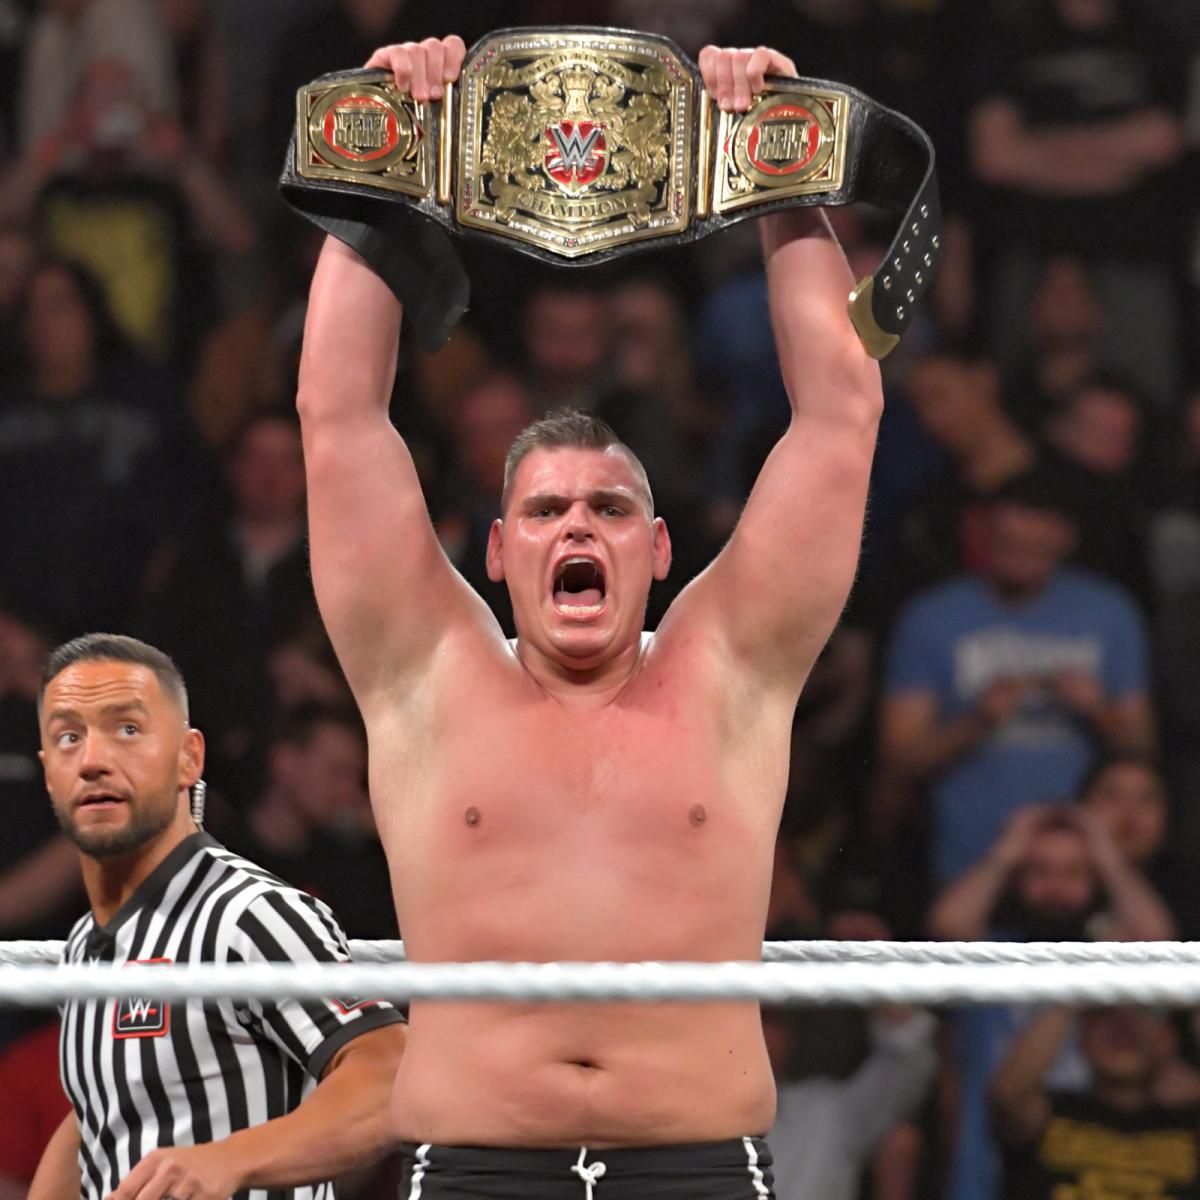 Walter beat Pete Dunne last month. Image: WWE